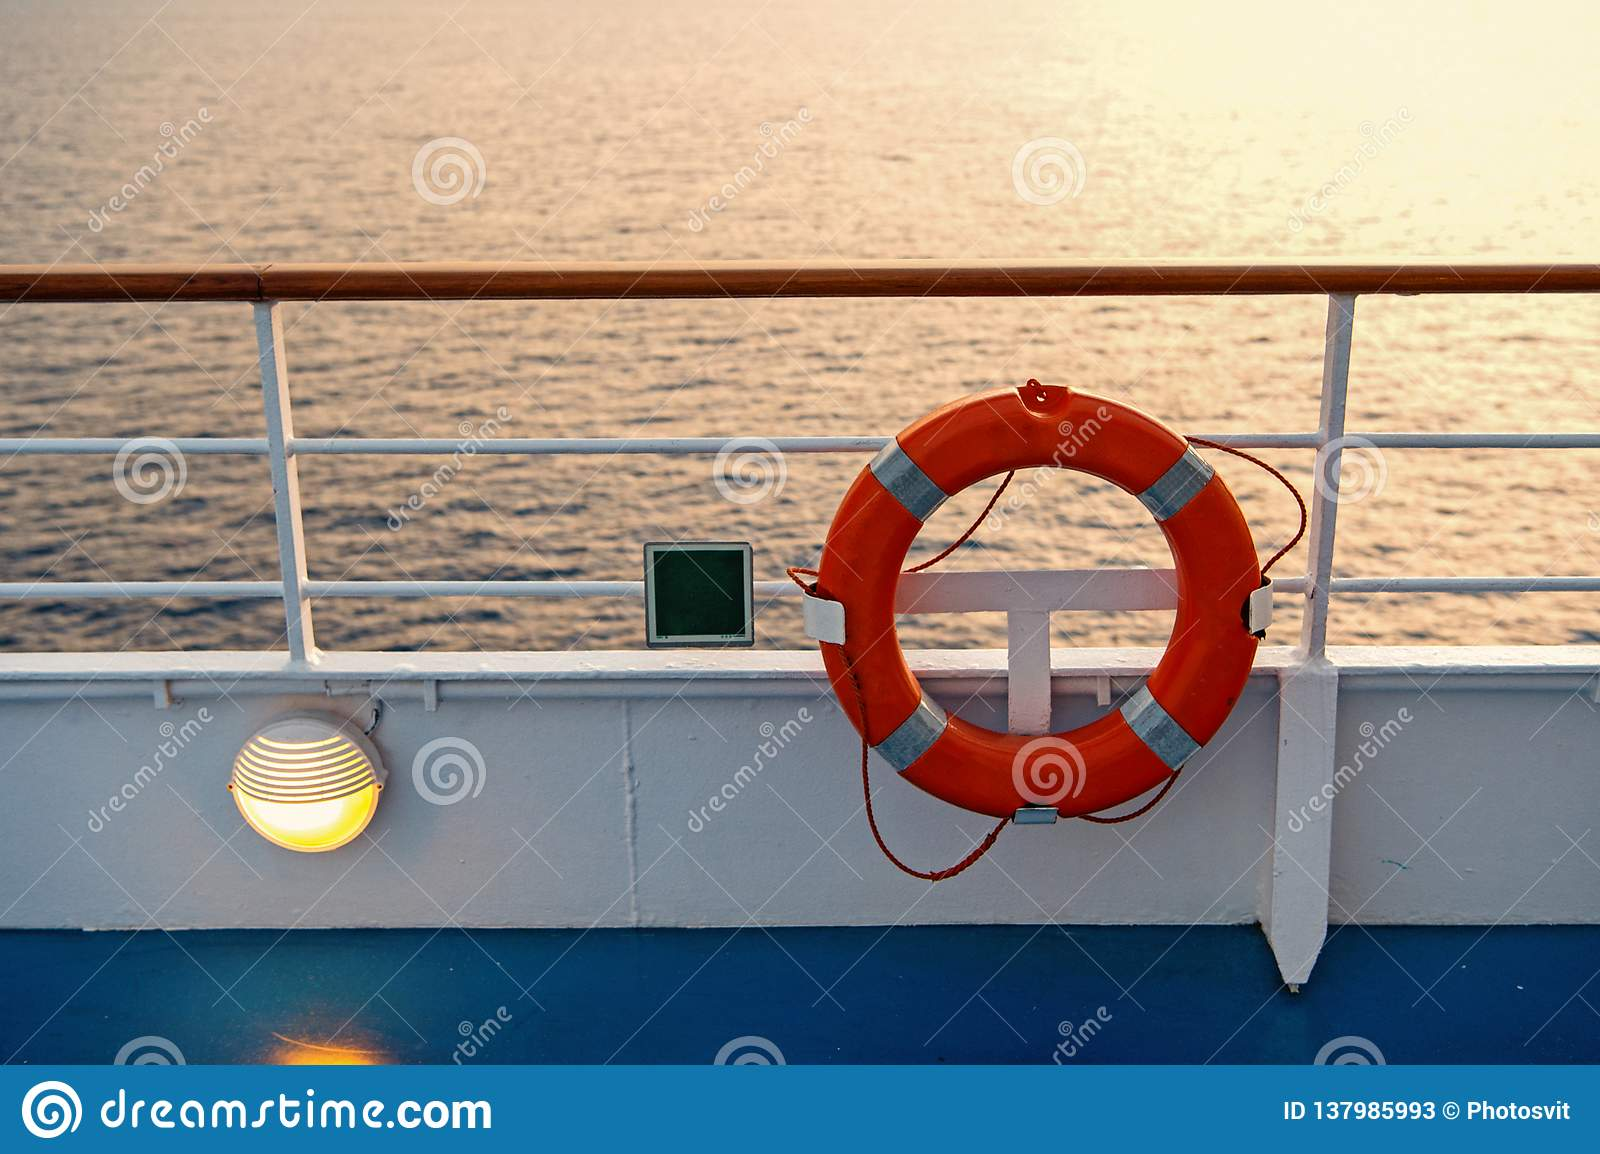 Buoy or lifebuoy ring on shipboard in evening sea in miami, usa. Flotation device on ship side on seascape. Safety